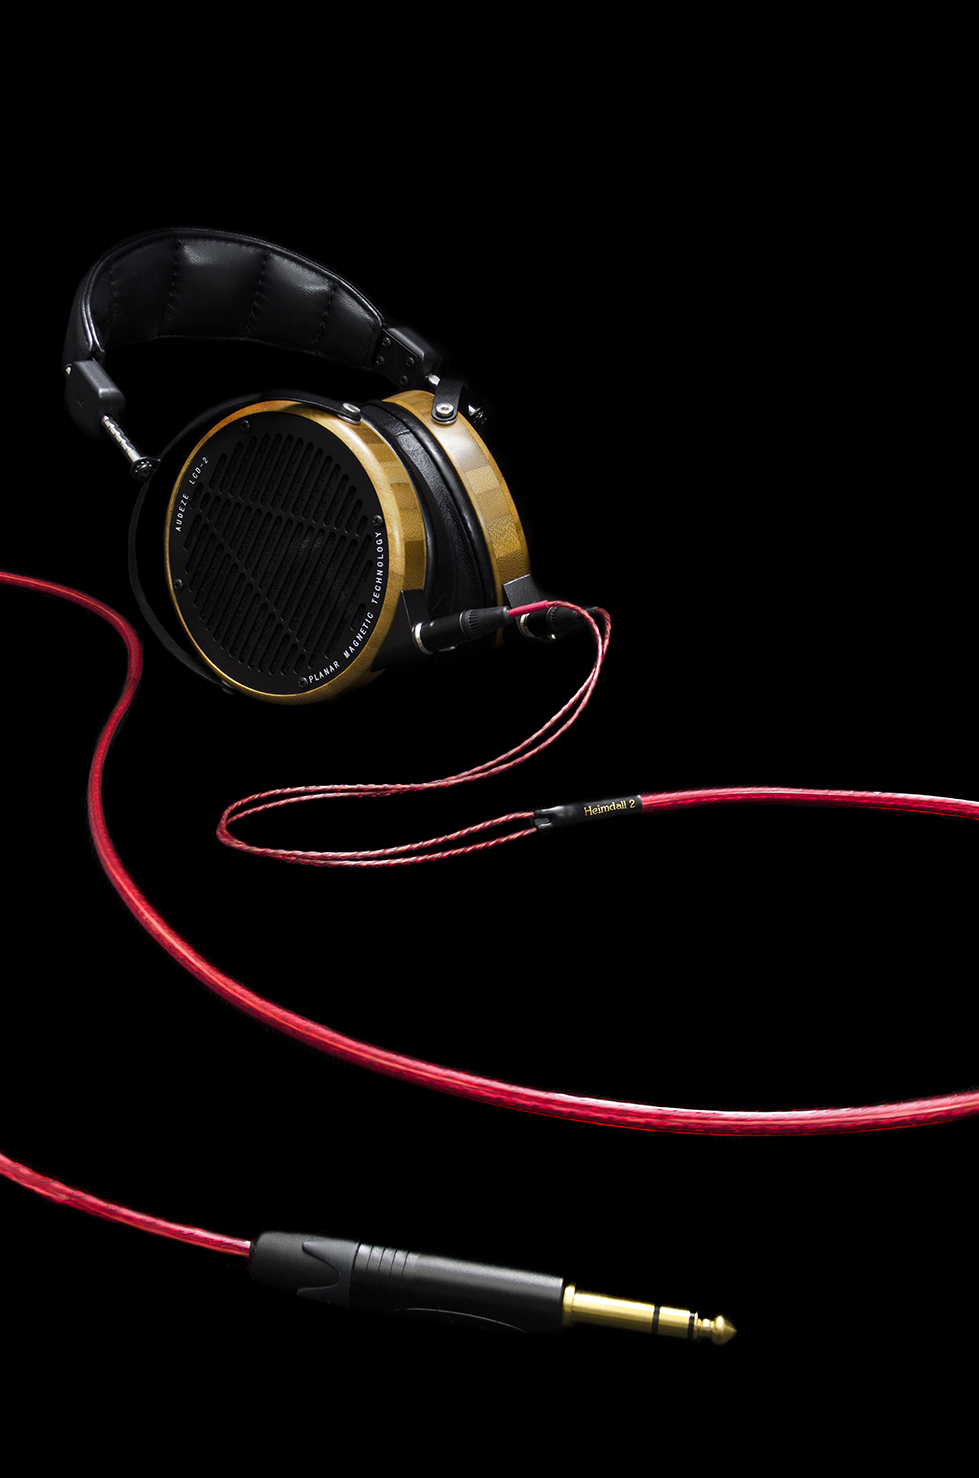 Headphone-Cable_LR